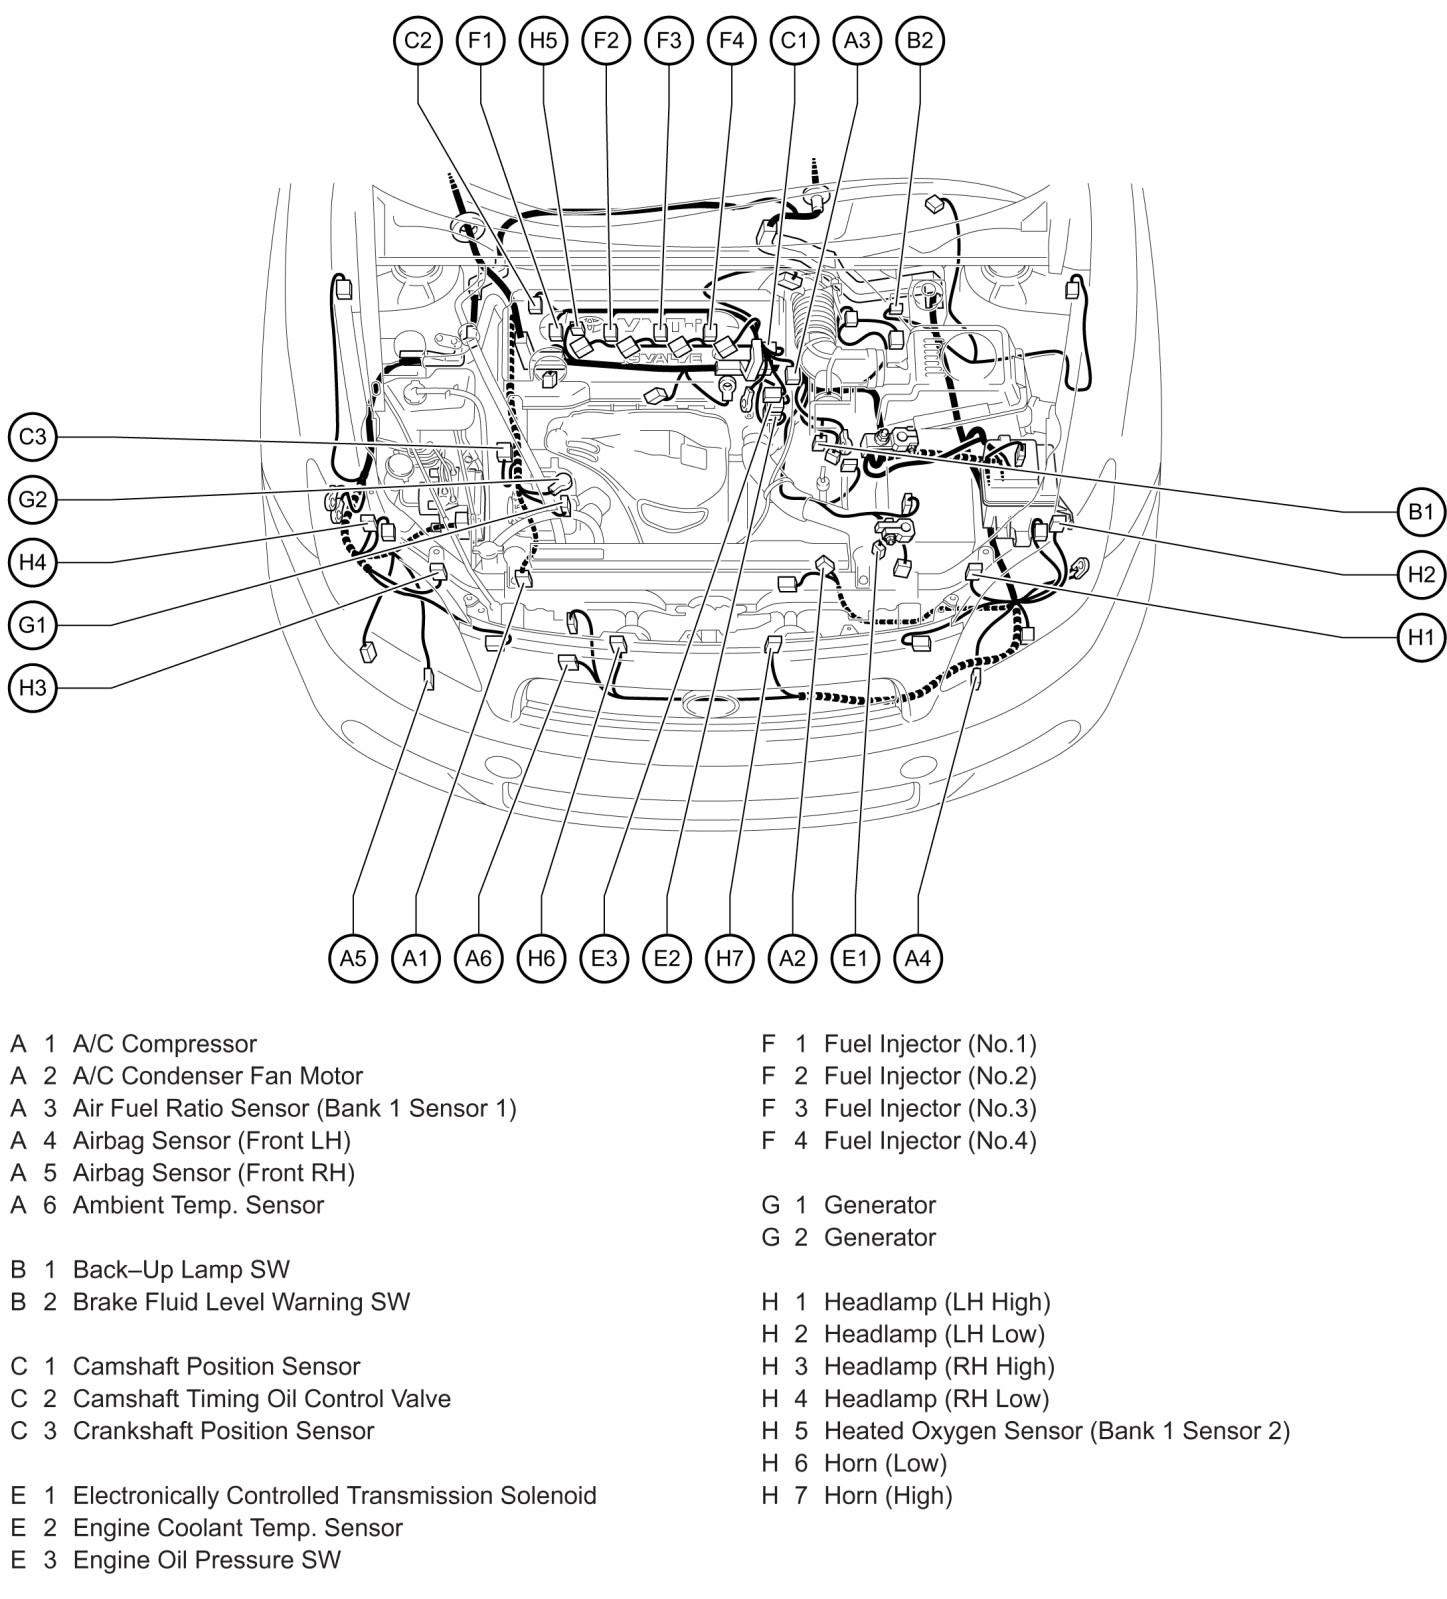 2006 Scion Tc Alternator Wiring Diagram on 2006 scion xb fuse diagram